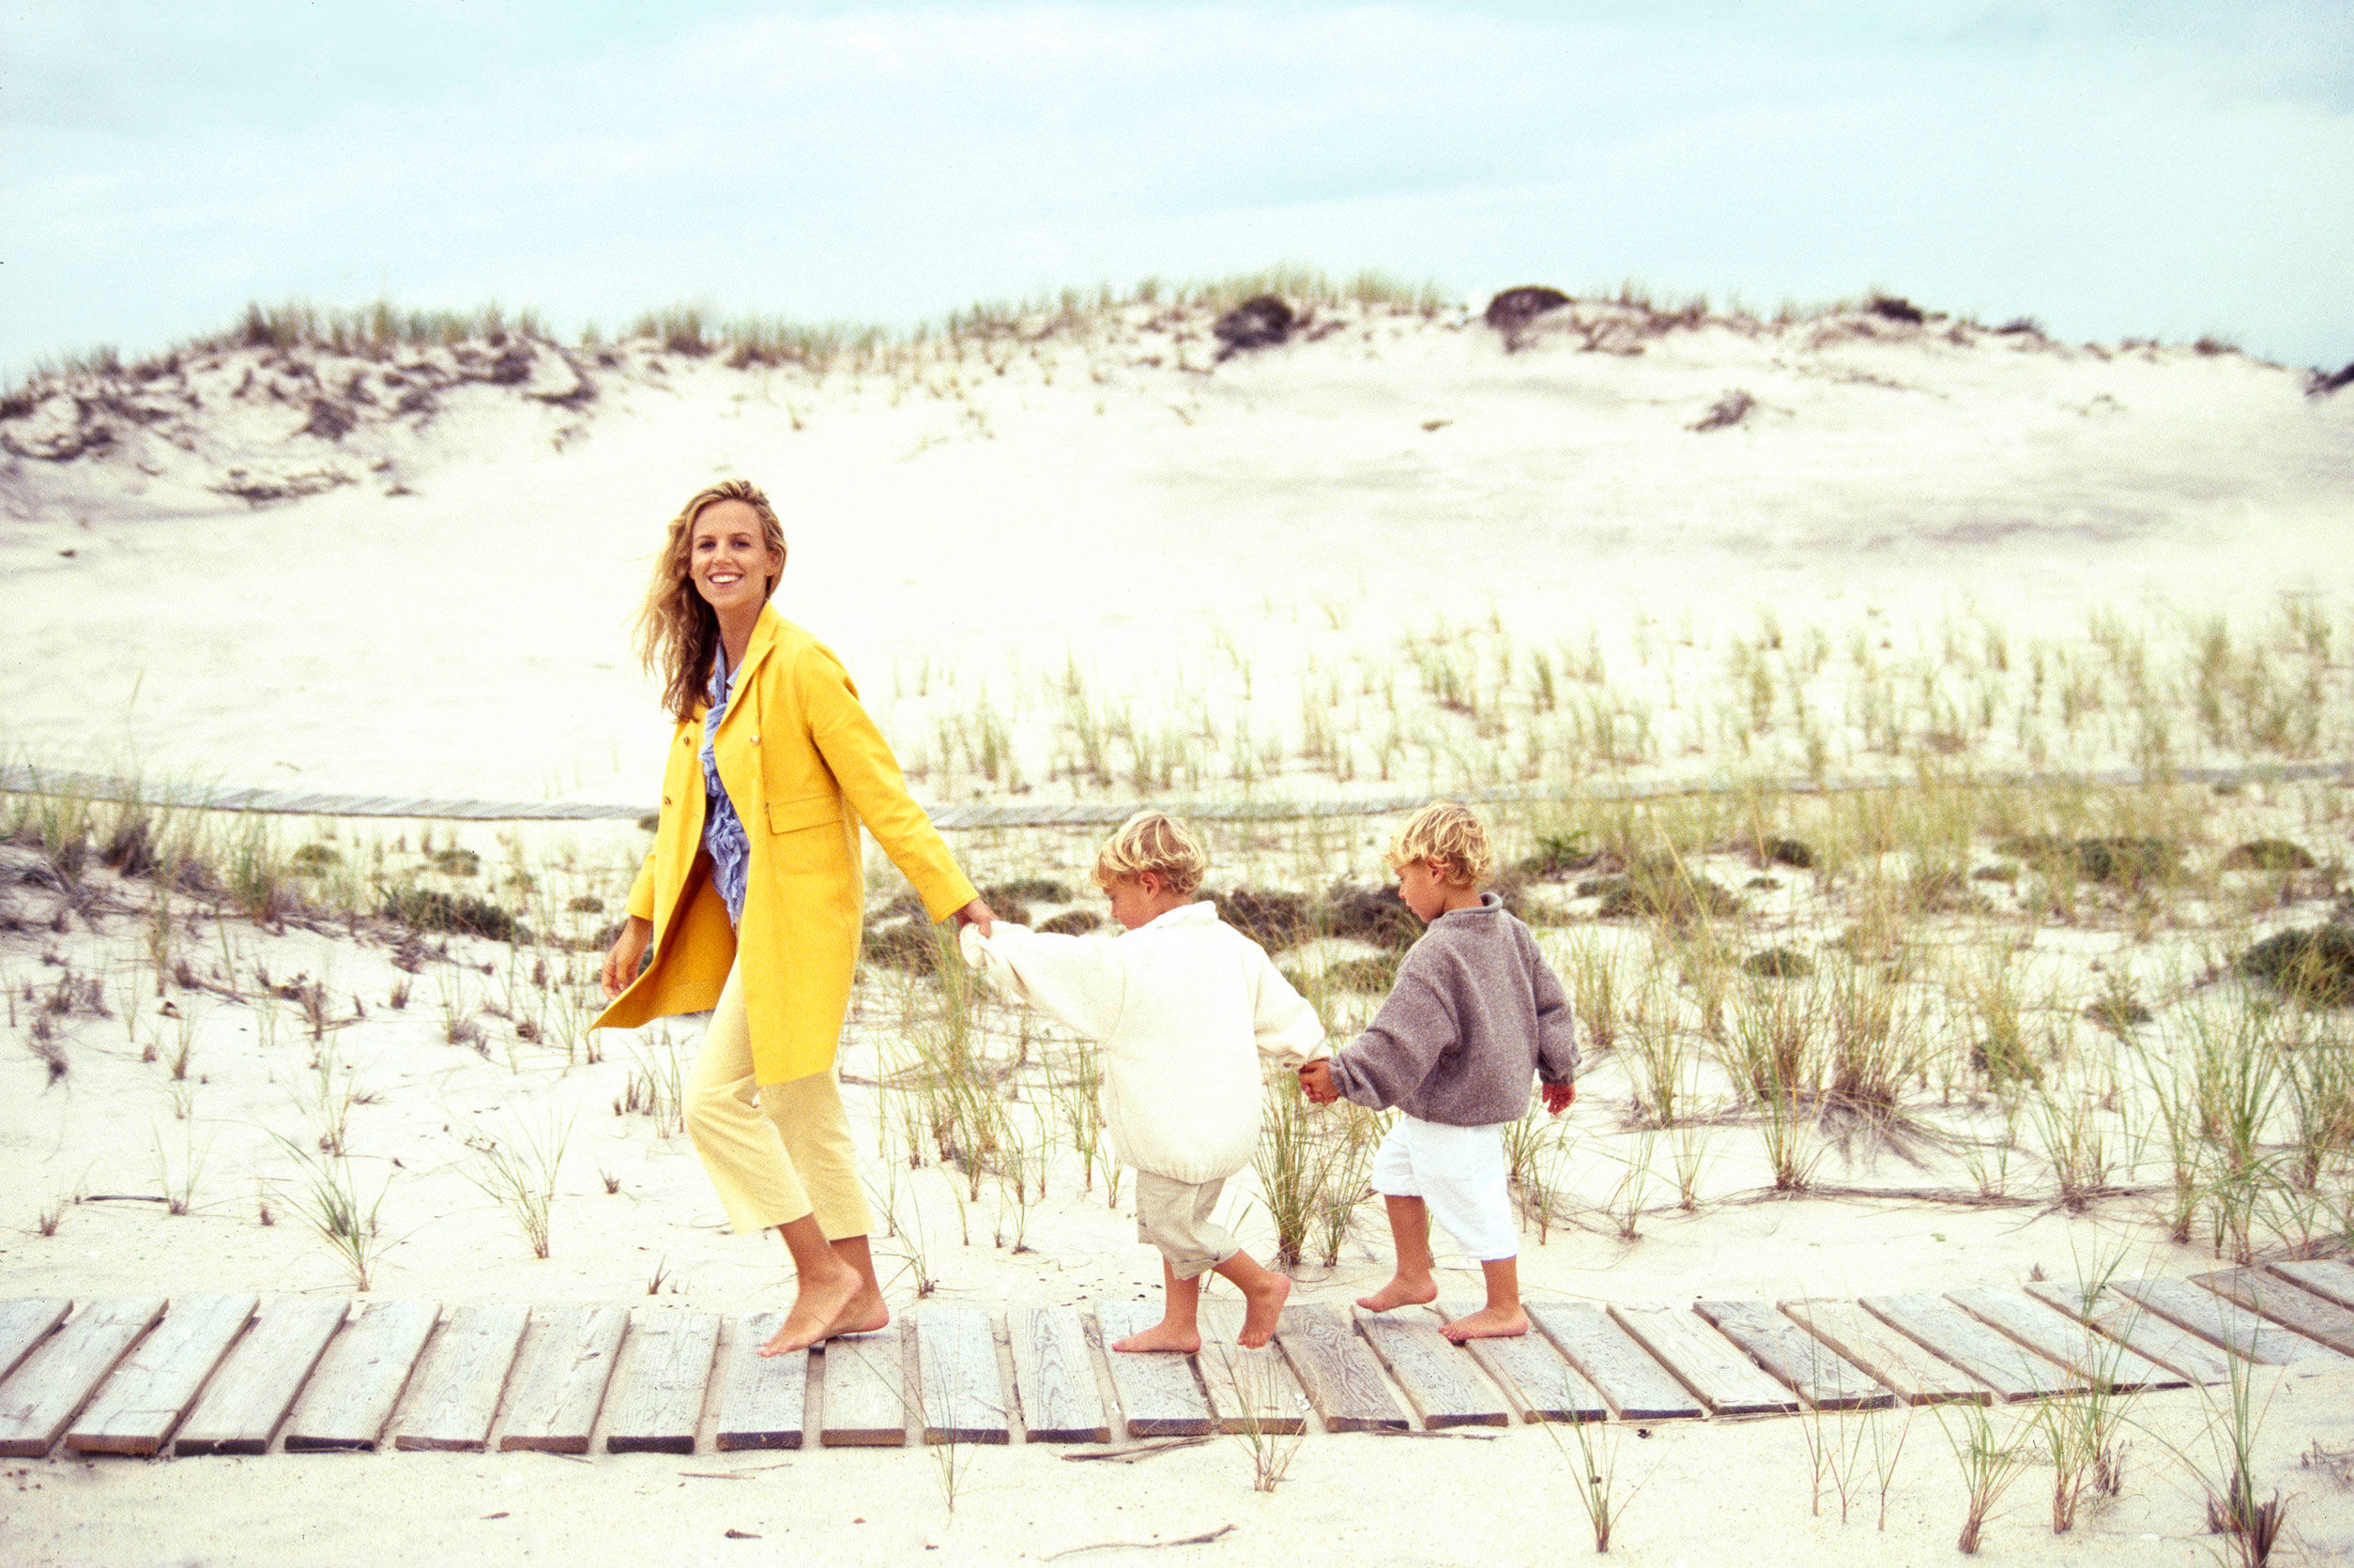 How to Take the Best Family Beach Portraits